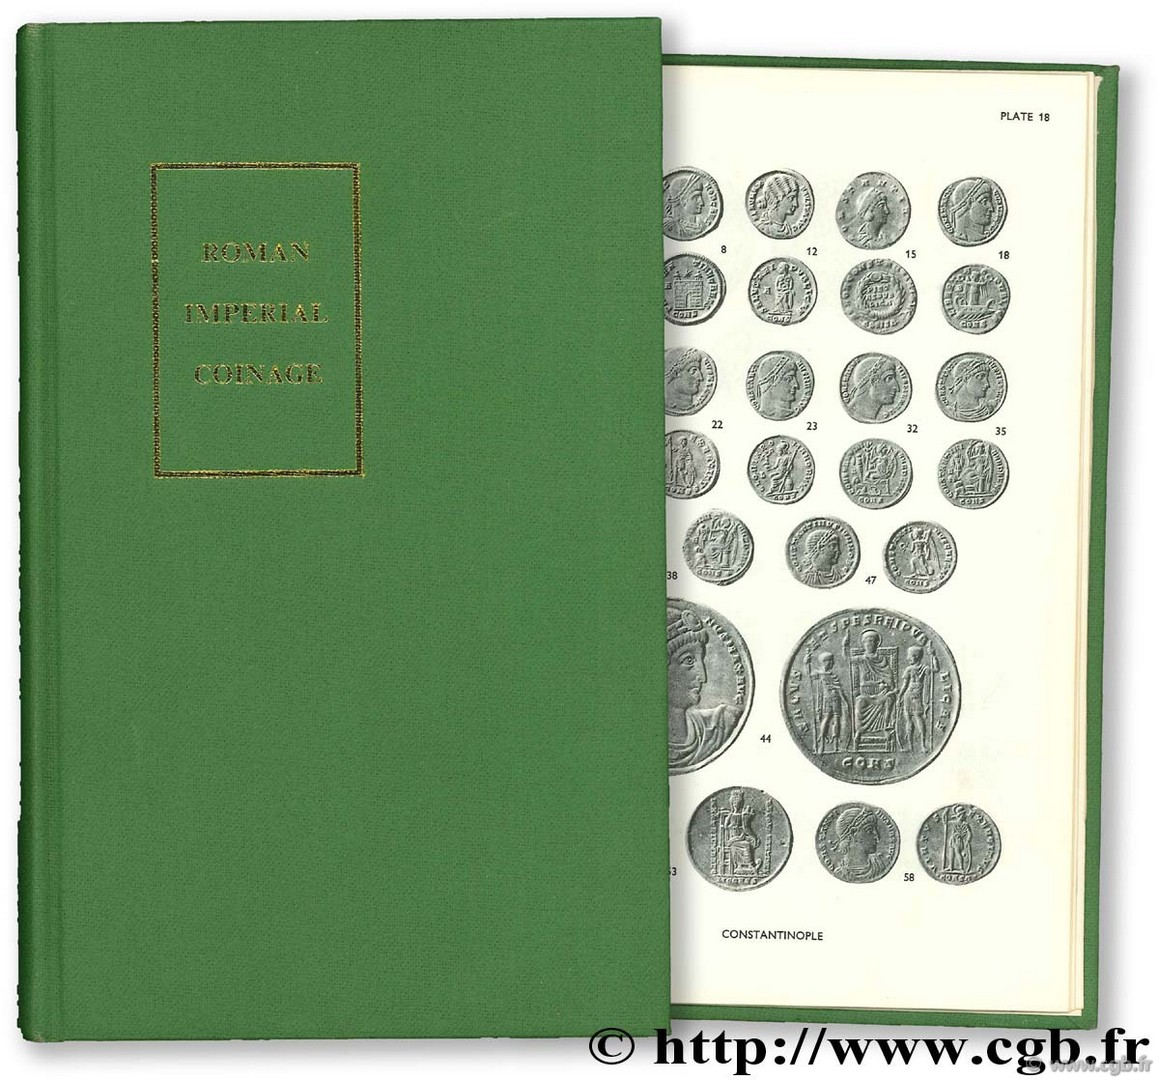 The Roman imperial coinage - the Standard catalogue of Roman imperial coins, 7,